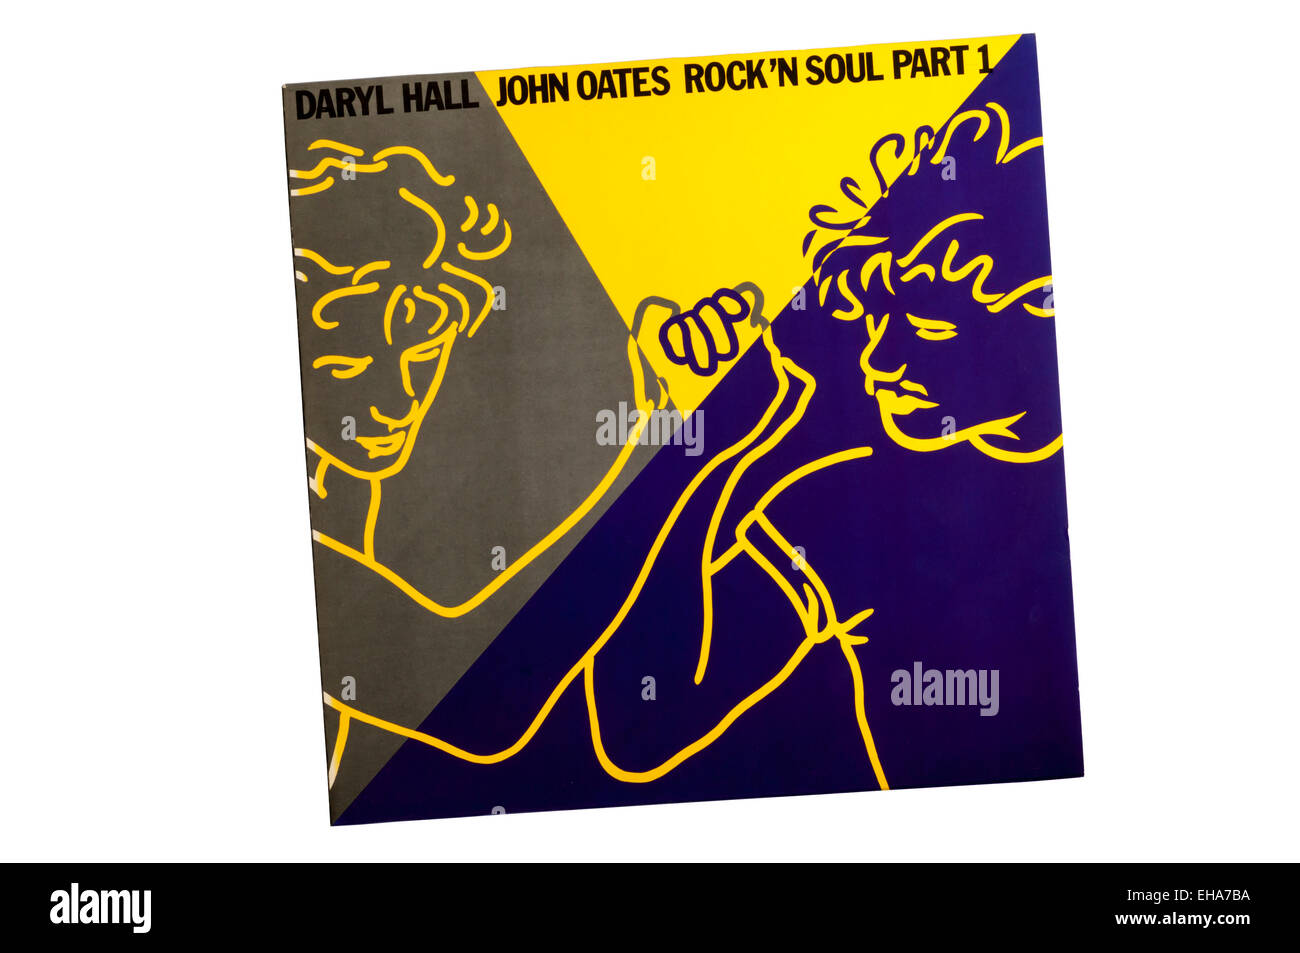 Rock 'n Soul Part 1 was a greatest hits album by American musical duo Hall & Oates, released by RCA Records in 1983. Stock Photo